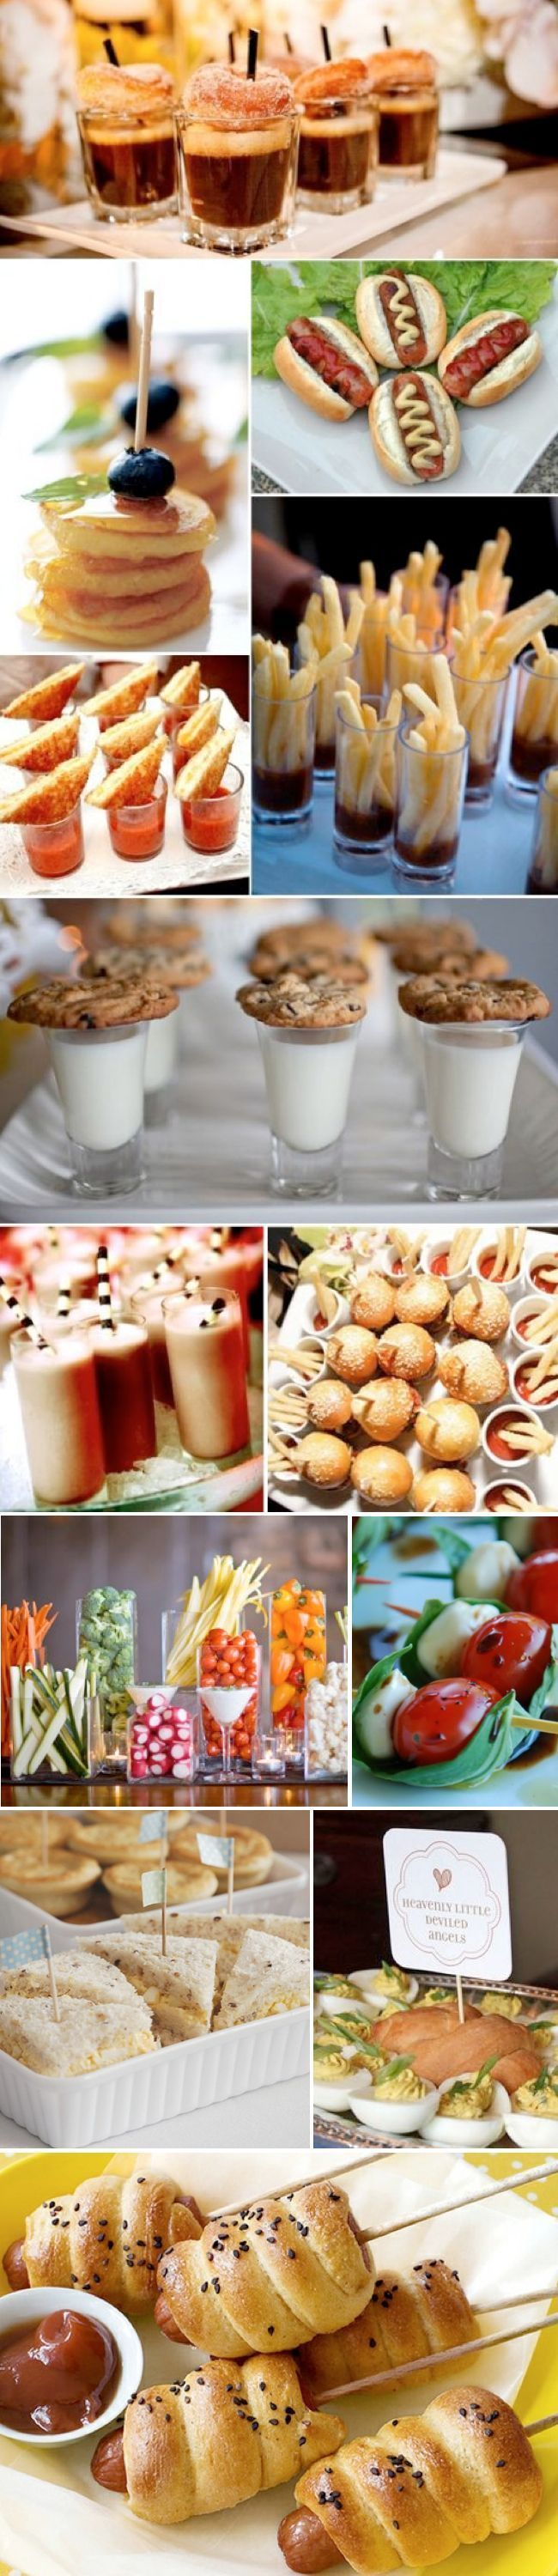 Wedding Buffet Menu Ideas Cheap 鈥?Wedding Ideas, Wedding Trends, and Wedding Galleries sports weddings, sport themed wedding ideas #wedding